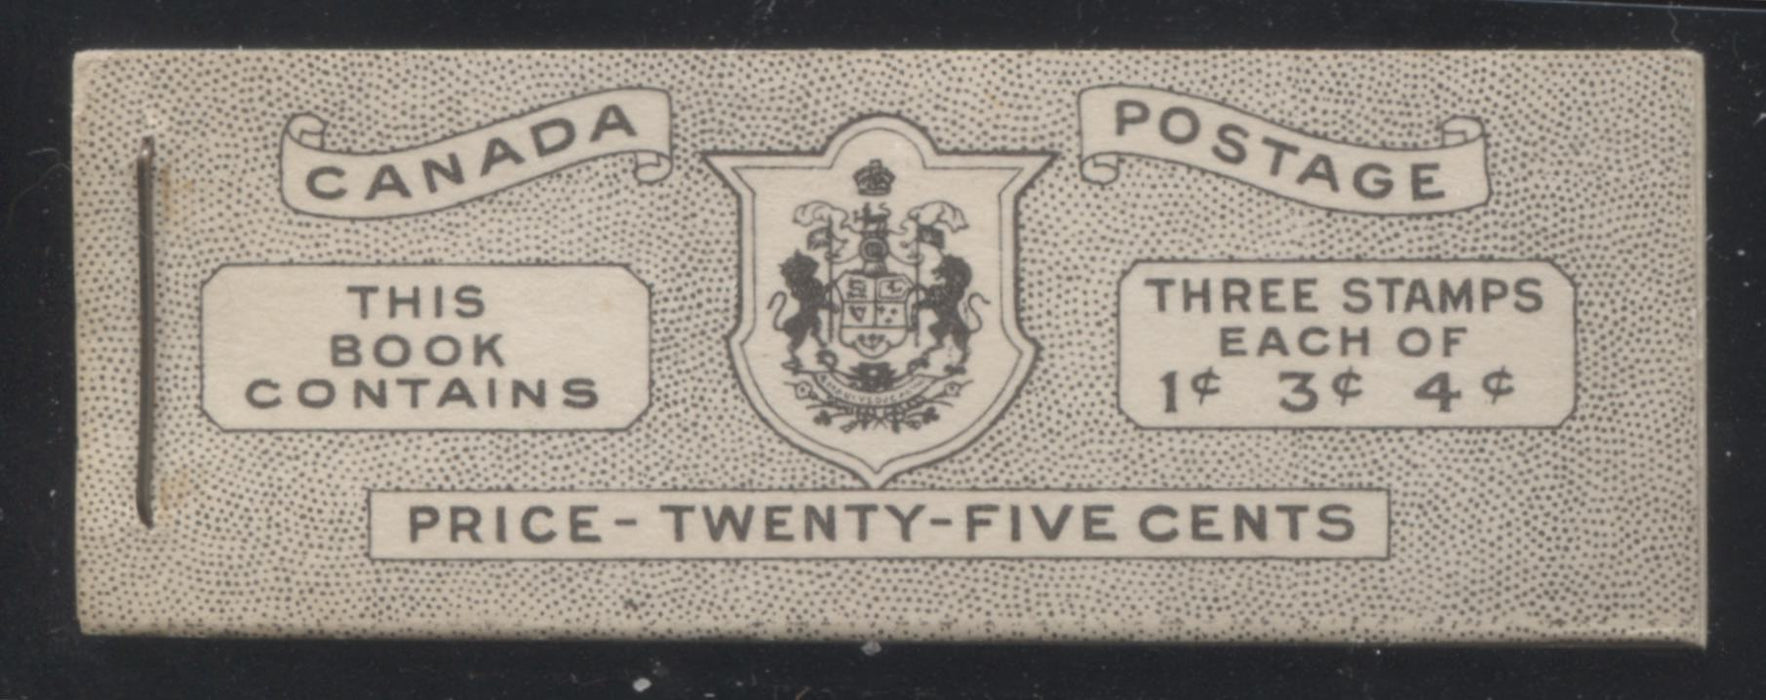 Canada #BK38b 1942-1949 War Issue Complete 25c, English Booklet Containing 1 Pane Each of 3 of 1c Green, 3c Rose-Purple and 4c Carmine Red, Harris Front Cover Type IVd , Back Cover Haiv, 7c & 5c Rate Page Brixton Chrome